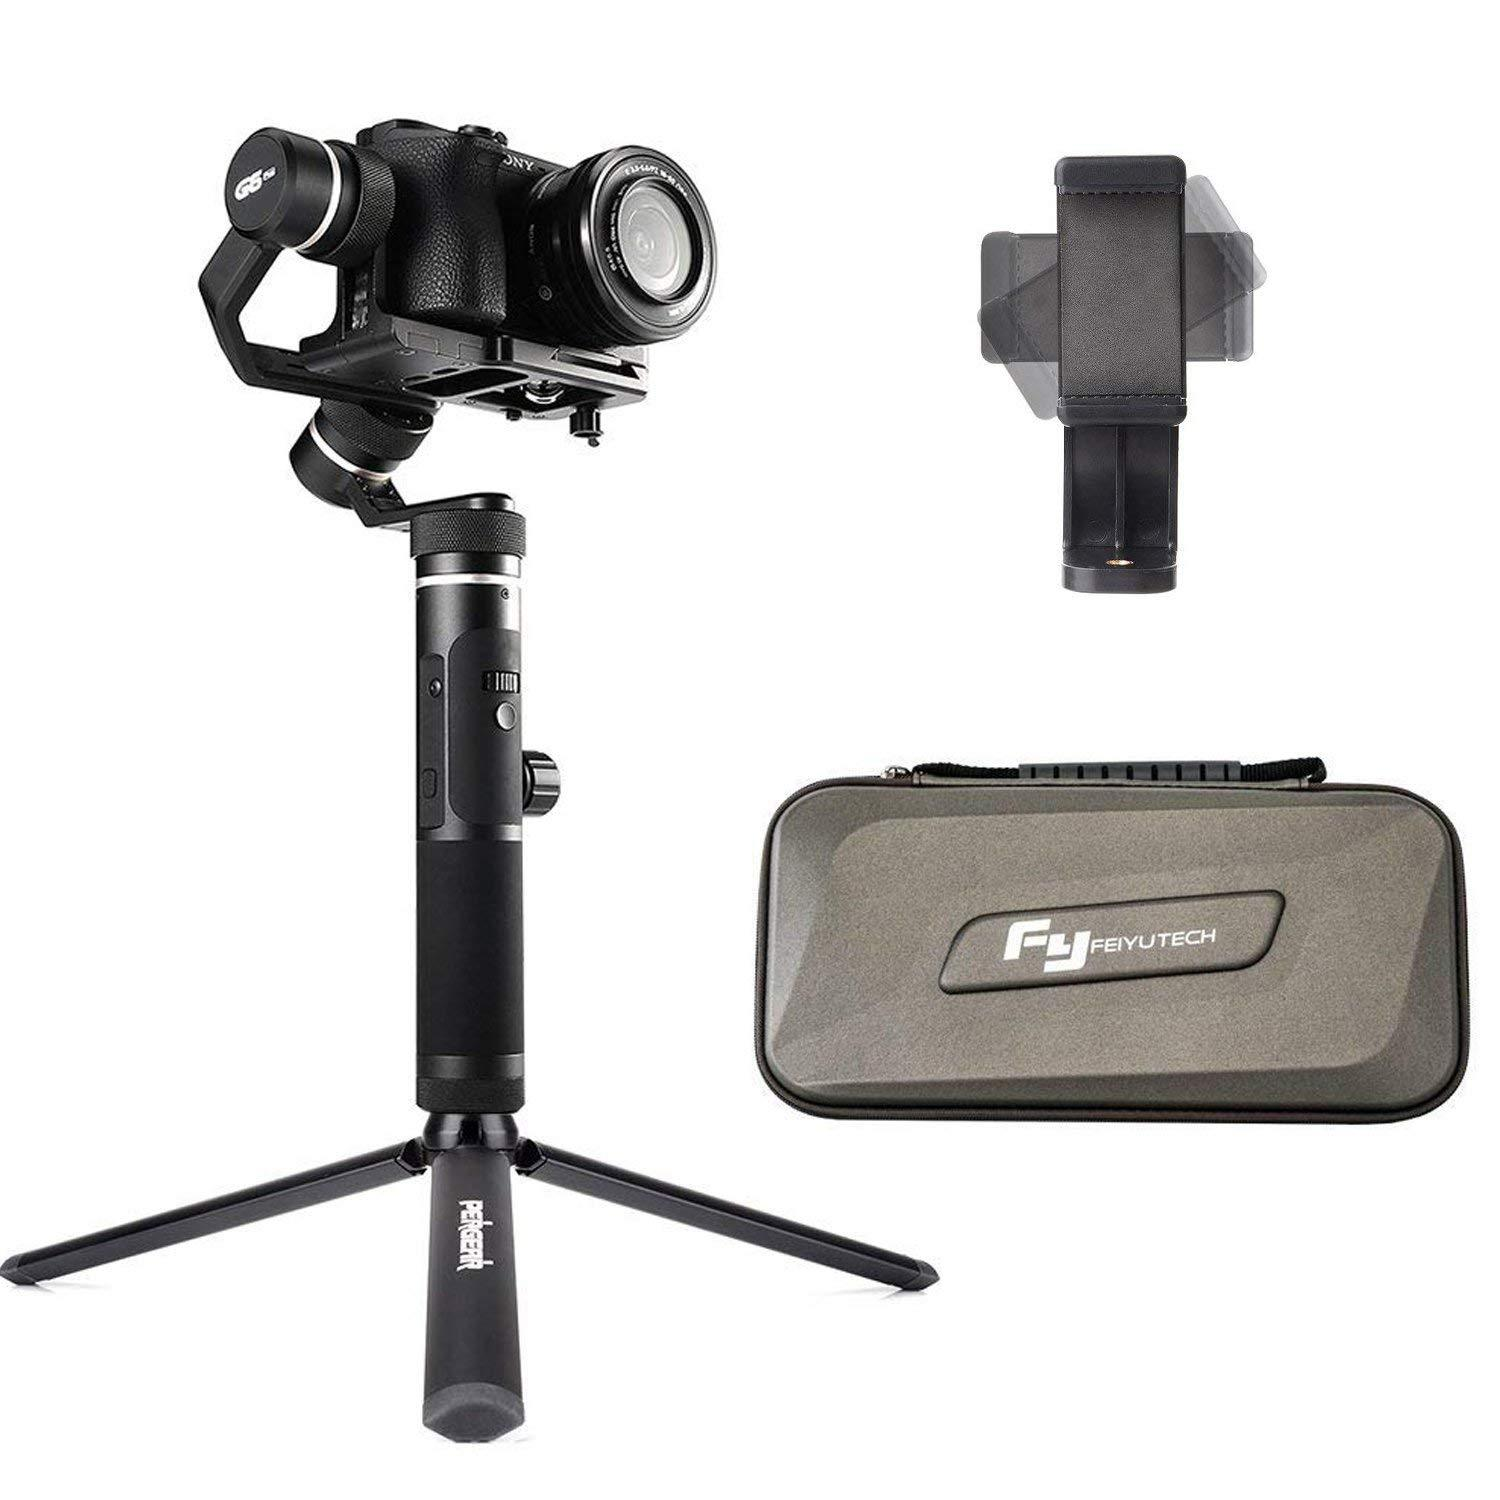 Buy Sell Cheapest Feiyu Fy Eva Best Quality Product Deals Spg 3 Axis Handheld Steady Gimbal For Smartphones Feiyutech G6 Plus Splash Proof Stabilizer 800g Payload 12